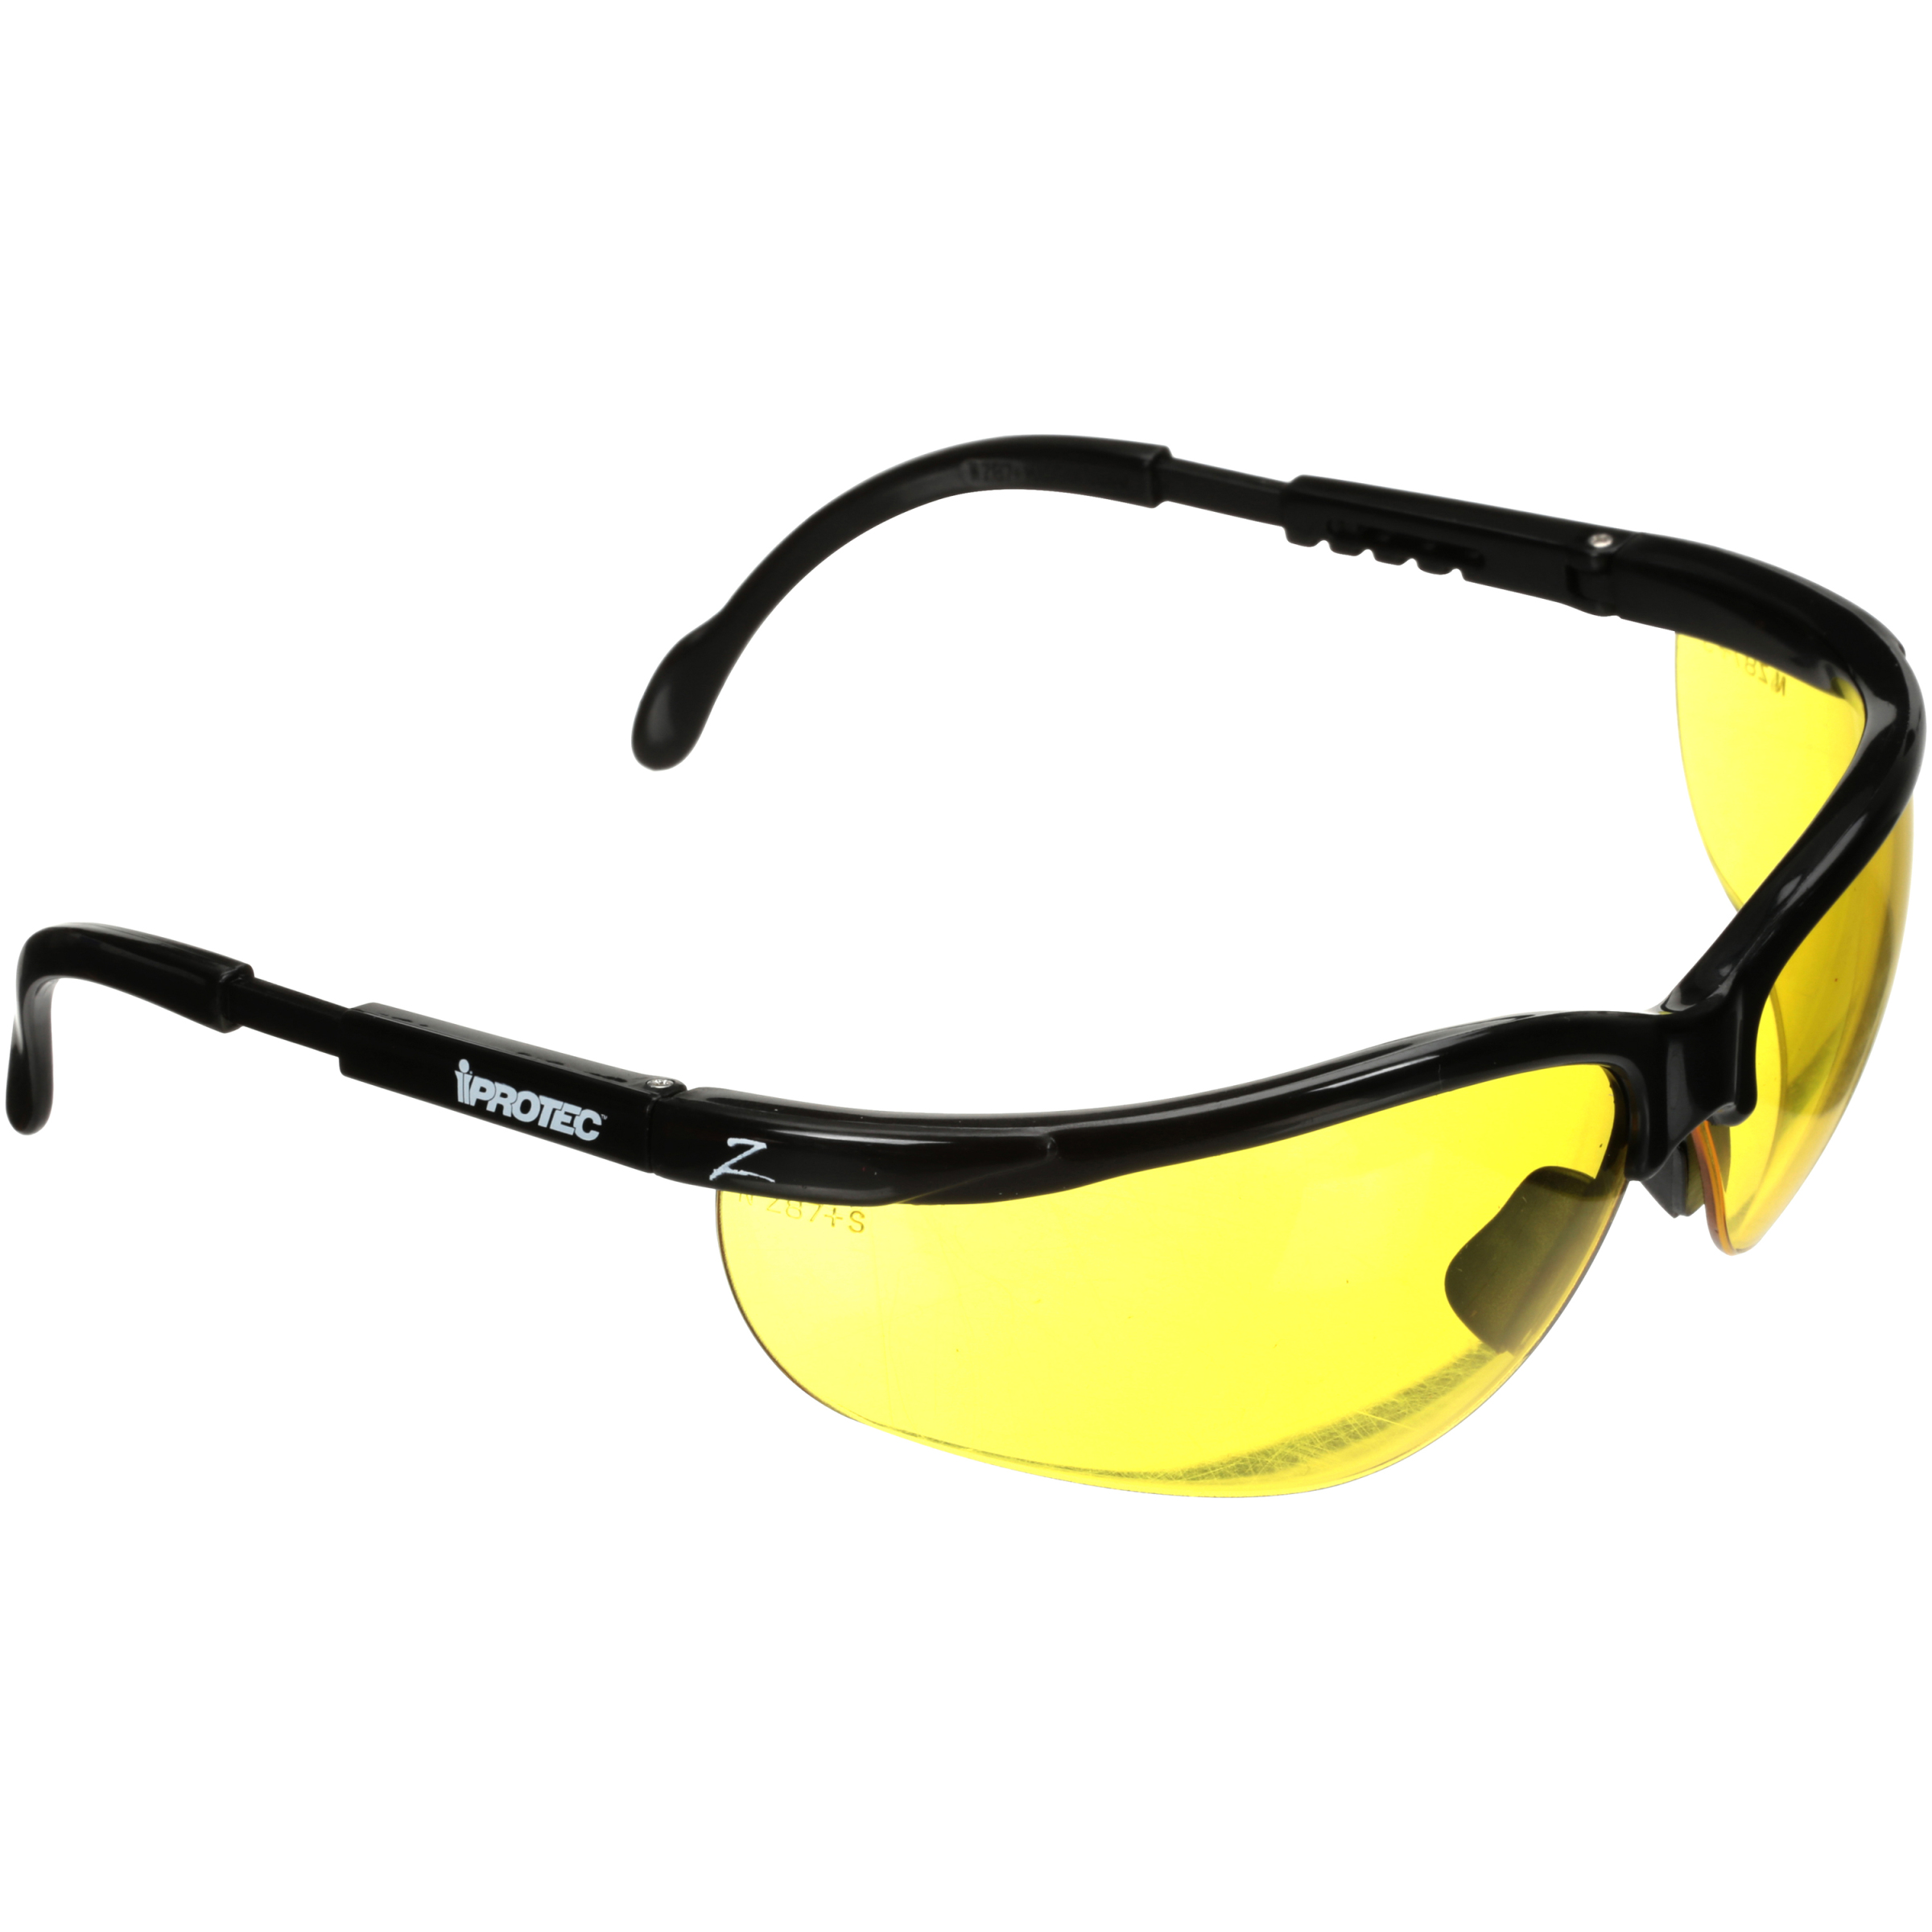 iProtec™ Z-Lens™ Yellow Safety Sport Glasses 3 pc pack ...